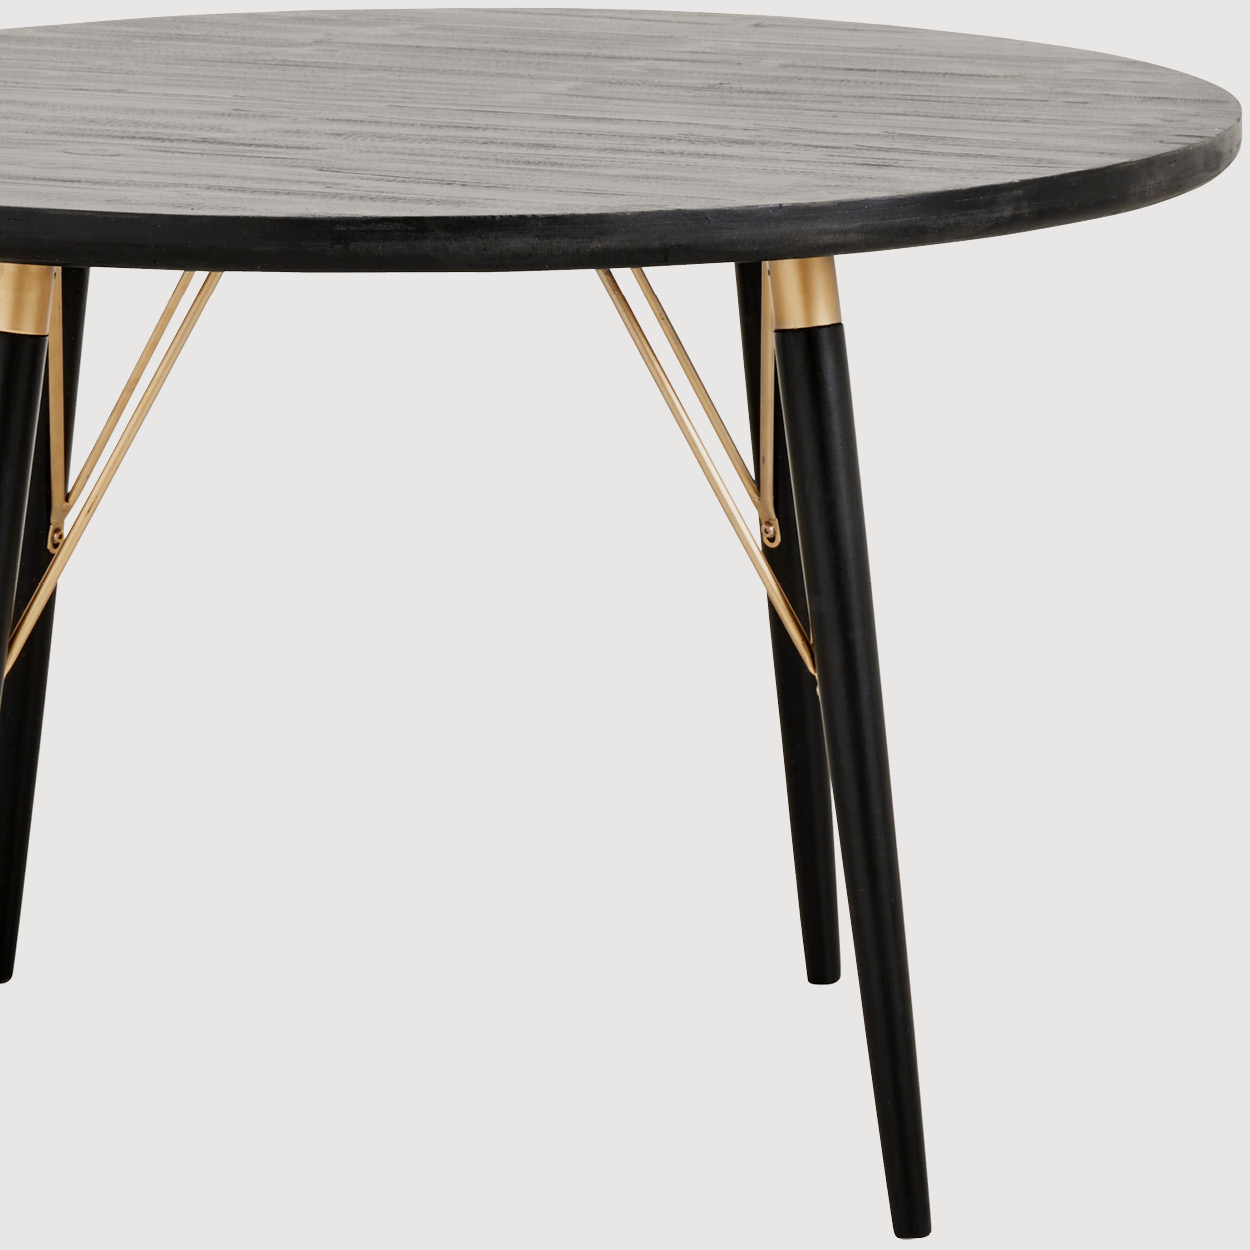 Fern Black and Gold Round Dining Table gallery image